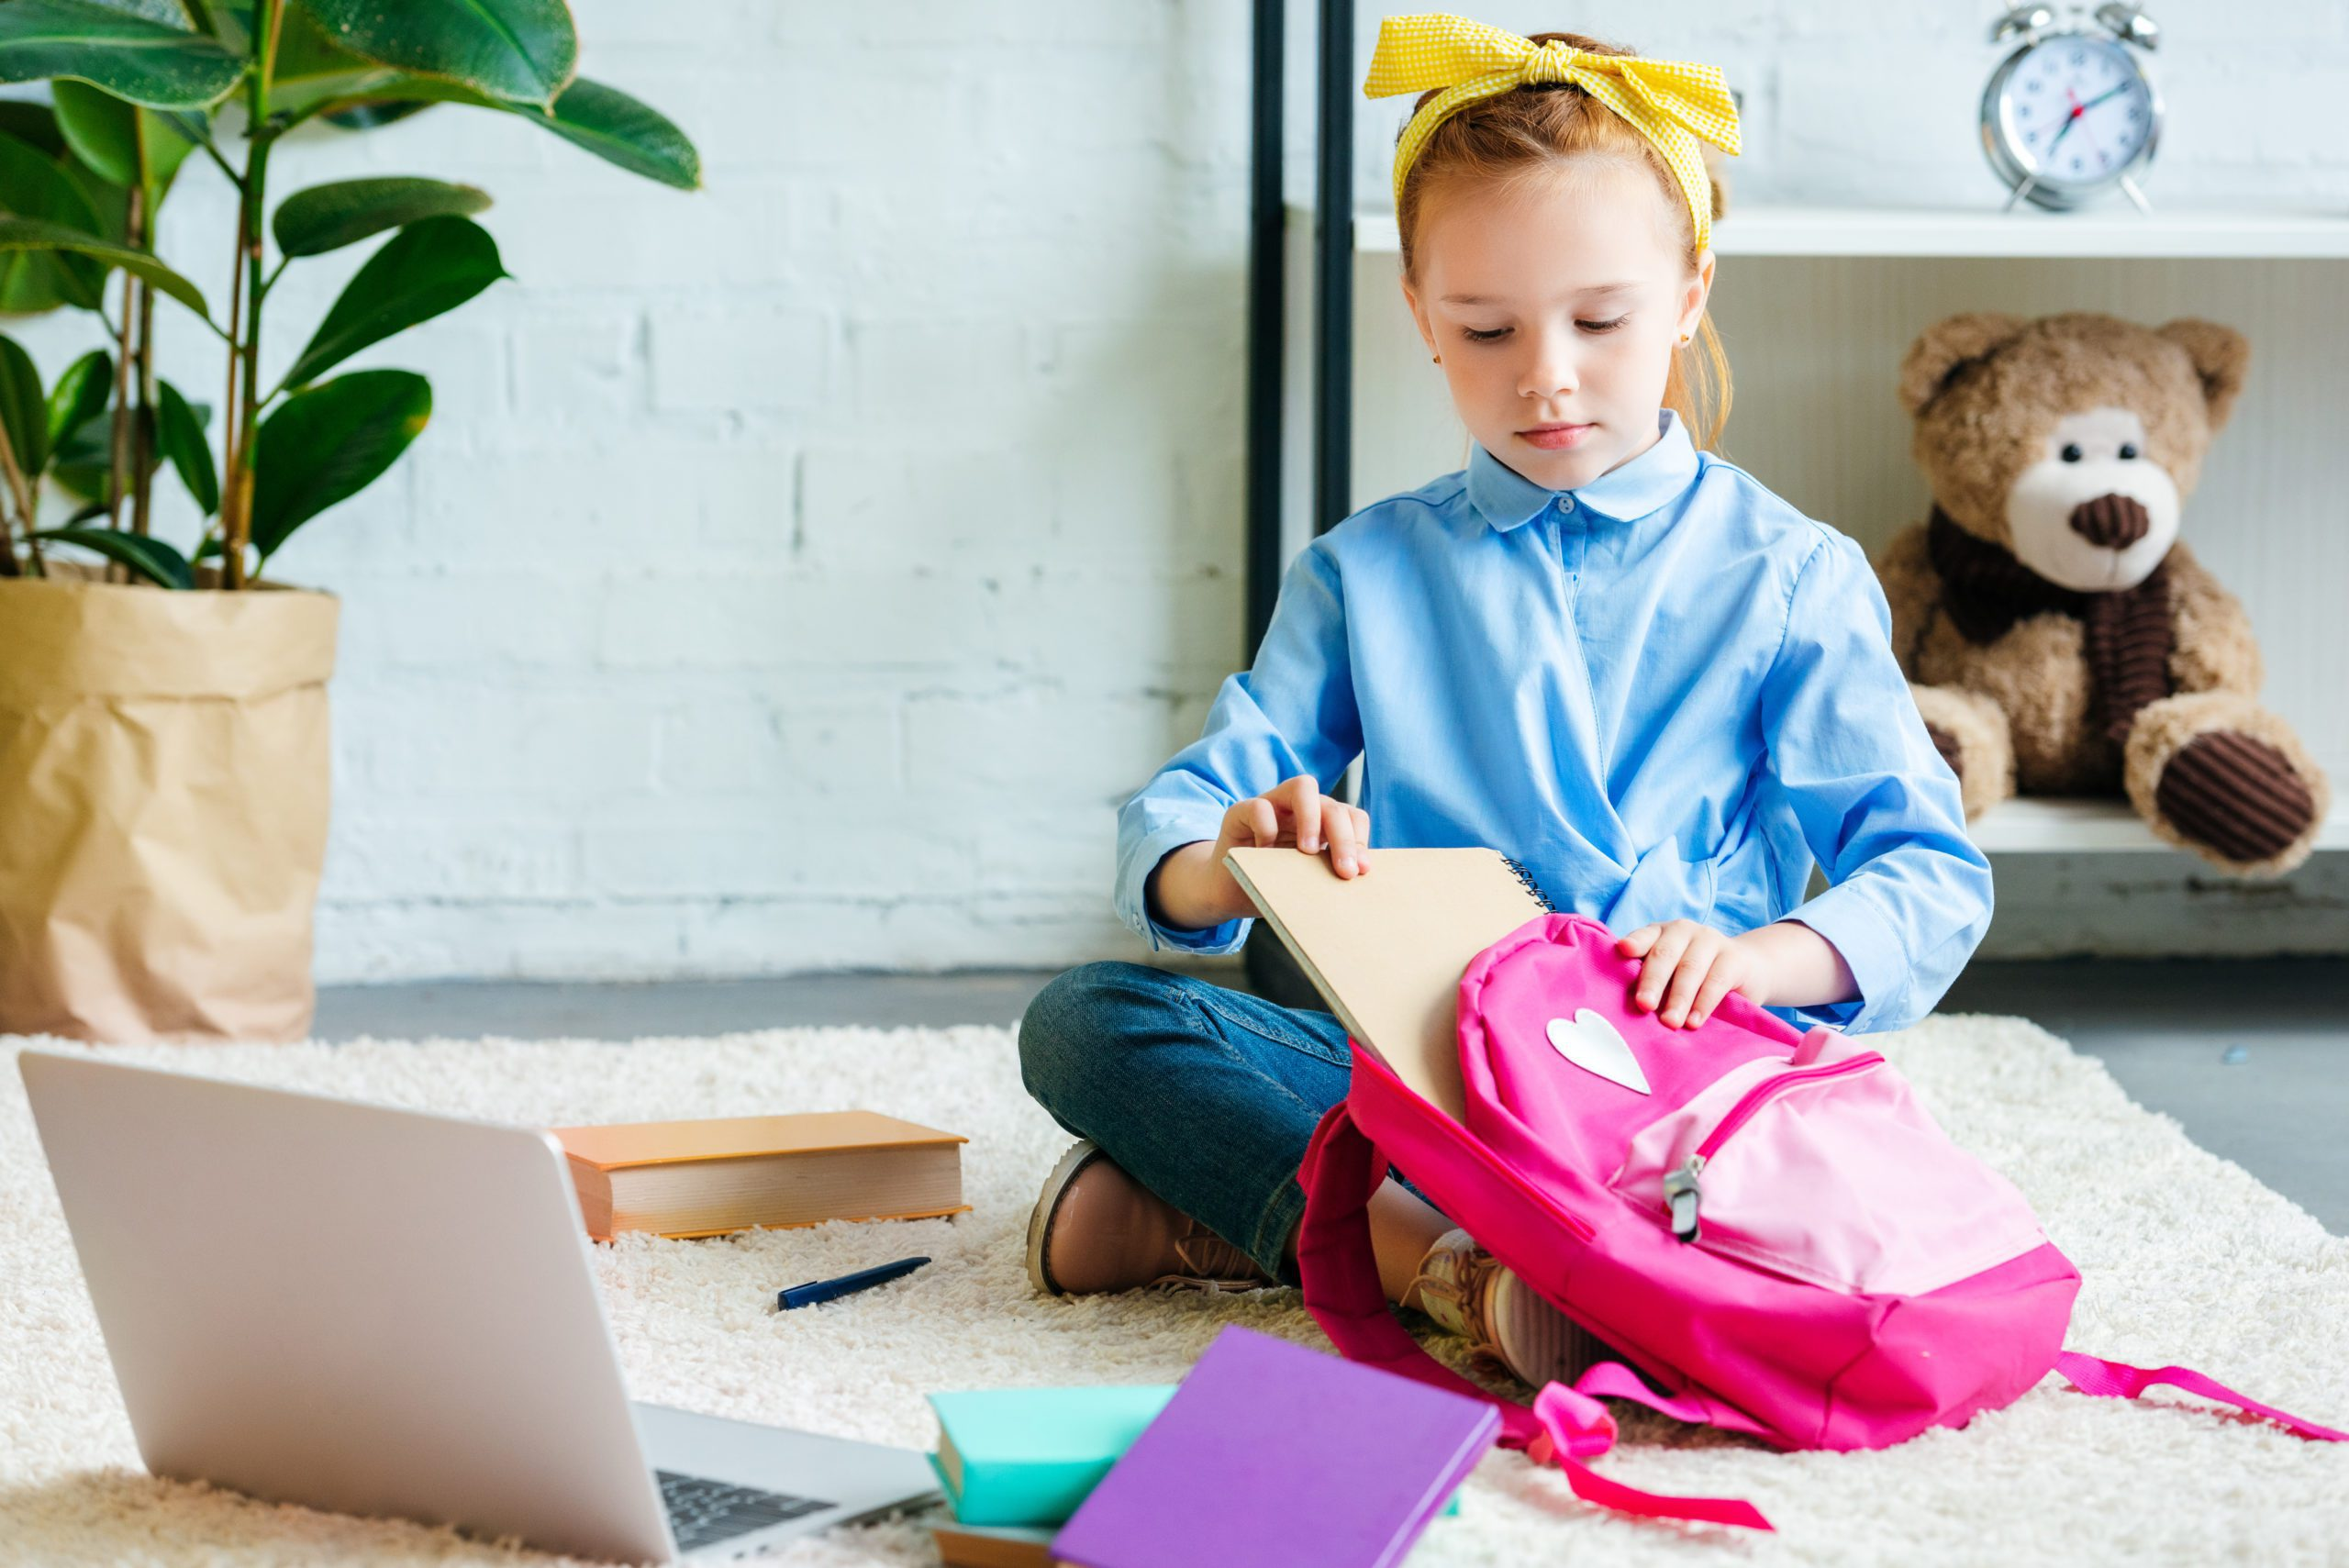 Here are five ways to help raise tech savvy kids. Teach your kids responsibility and the value of work without sacrificing the benefits of the digital age. #parenting #technology #digital #parentingtips